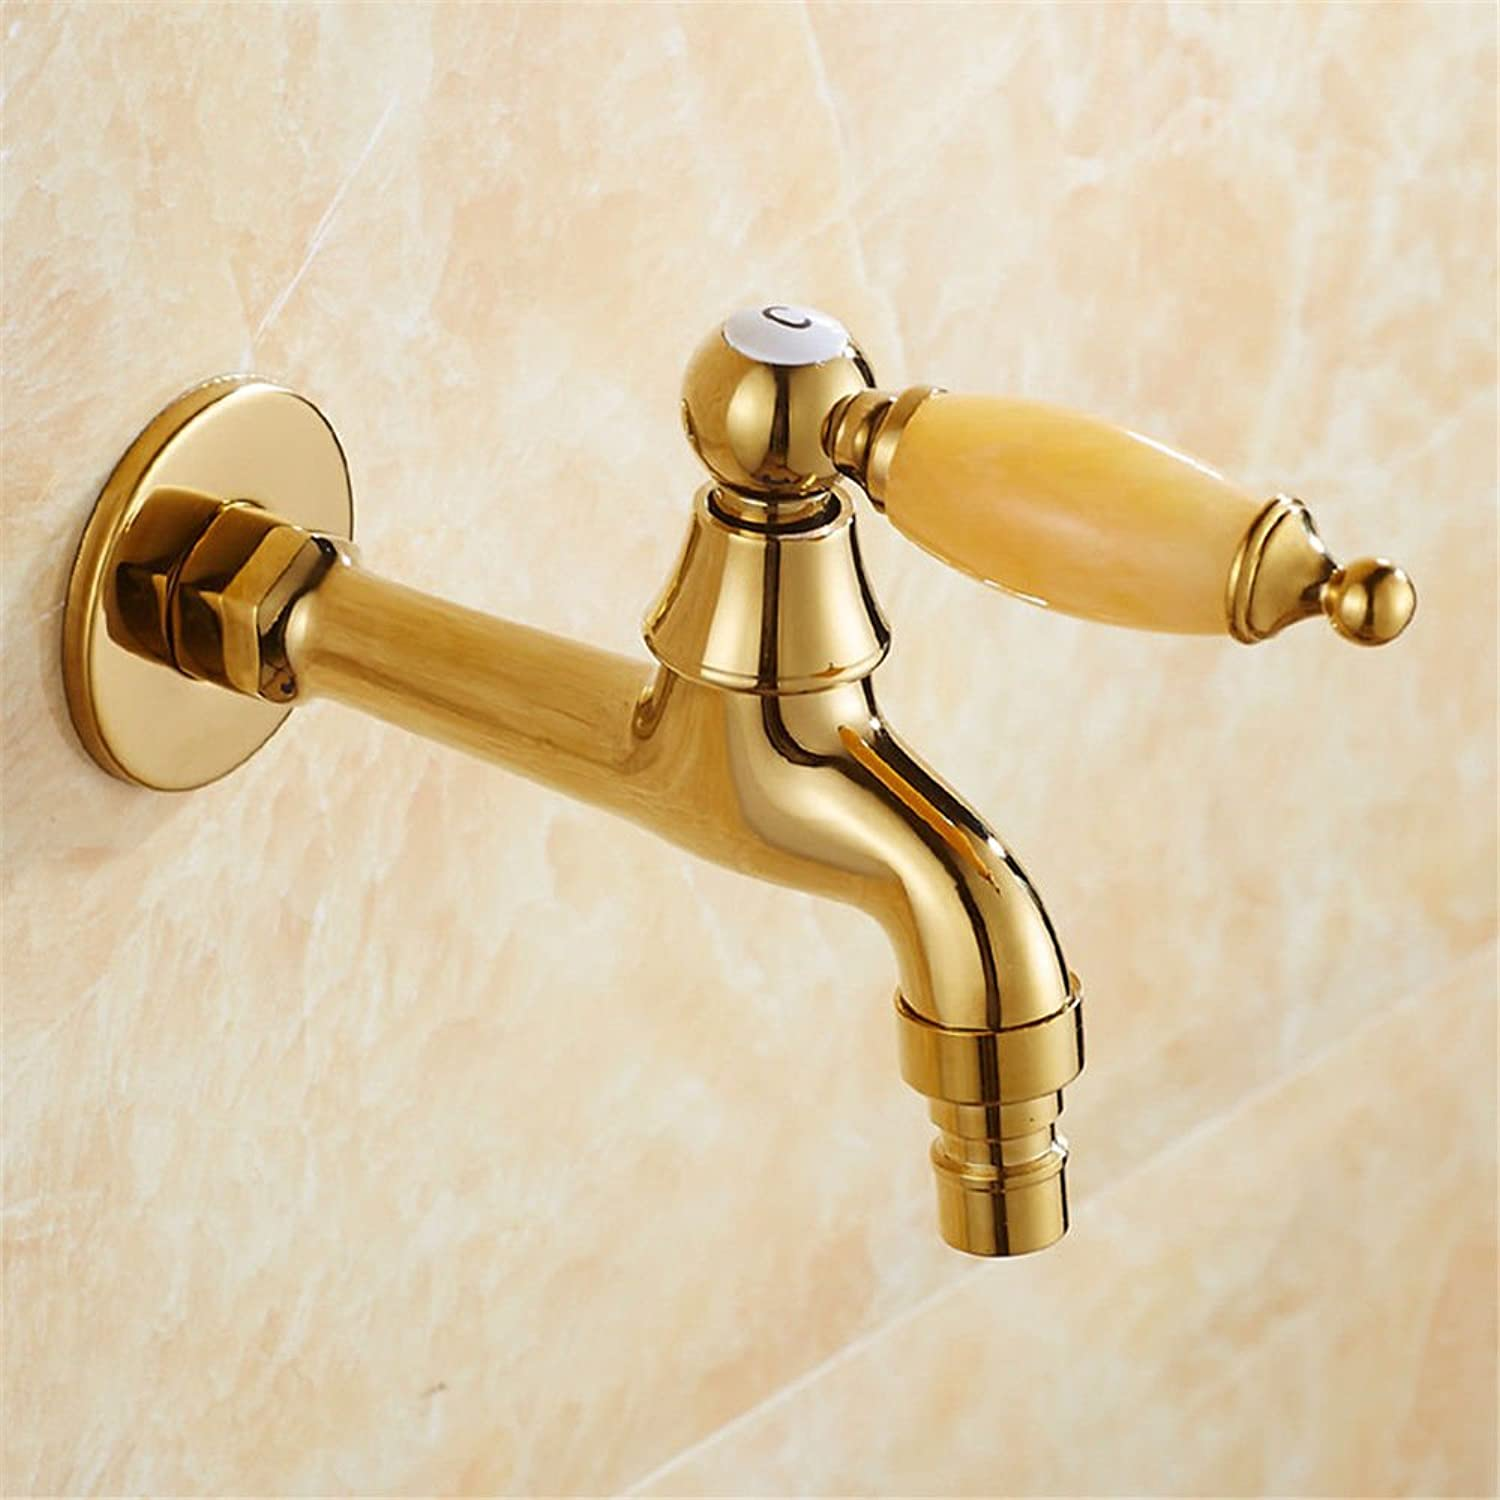 ETERNAL QUALITY Bathroom Sink Basin Tap Brass Mixer Tap Washroom Mixer Faucet Single Handle single hole full brass faucets washing long-肘 elbows sit-in basin single fauce